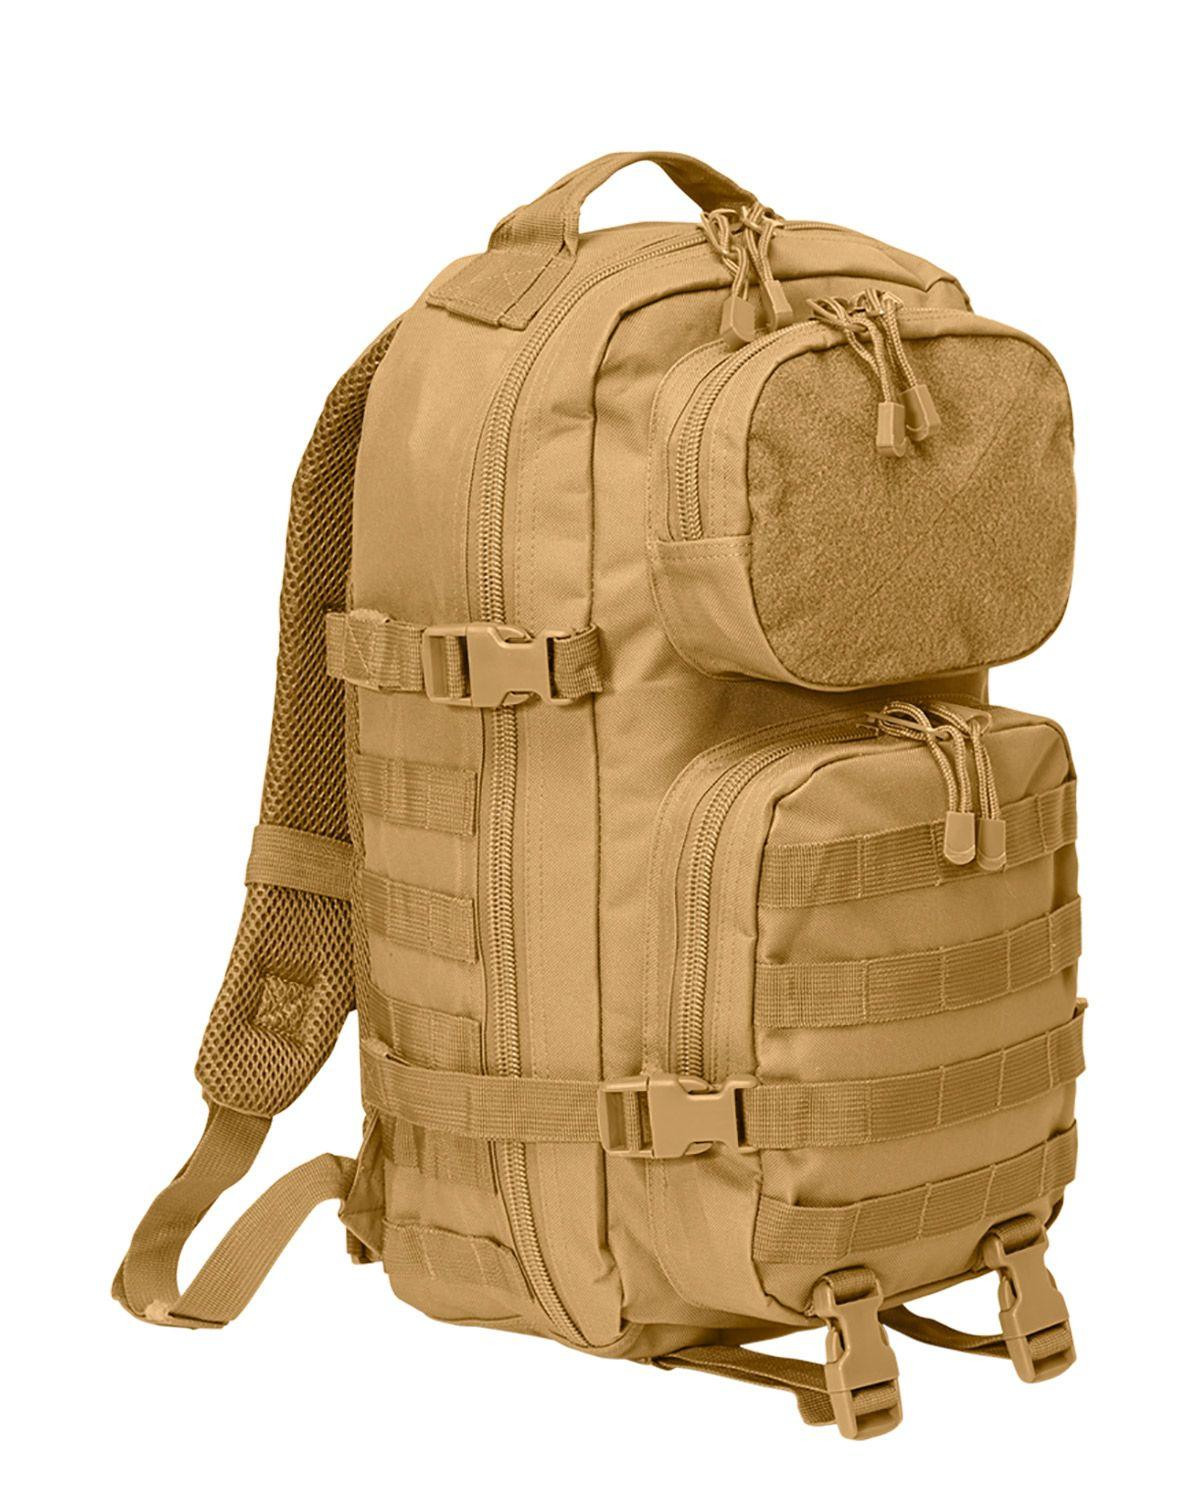 Image of   Brandit Patch Assault Rygsæk - 25 Liter (Coyote Brun, One Size)